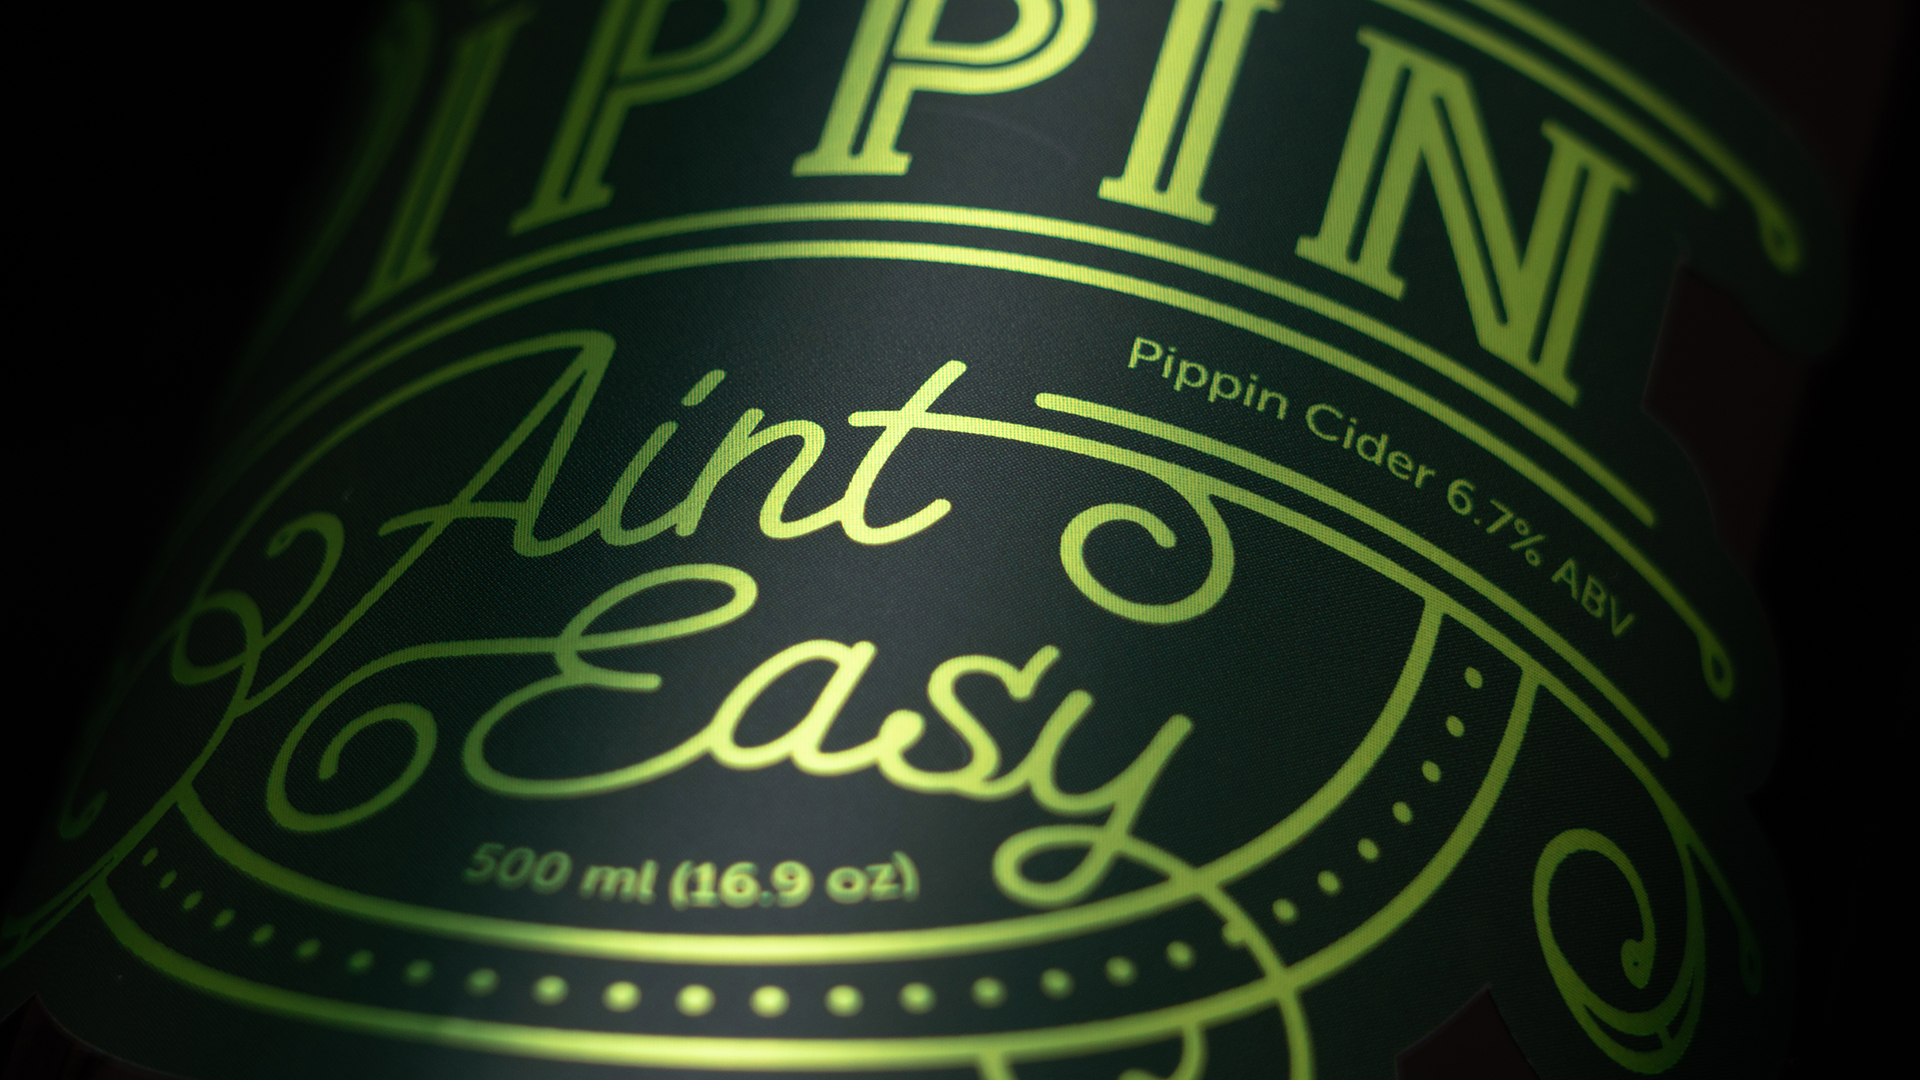 A Serious Dry Cider for Not So Serious People / World Brand and Packaging Design Society